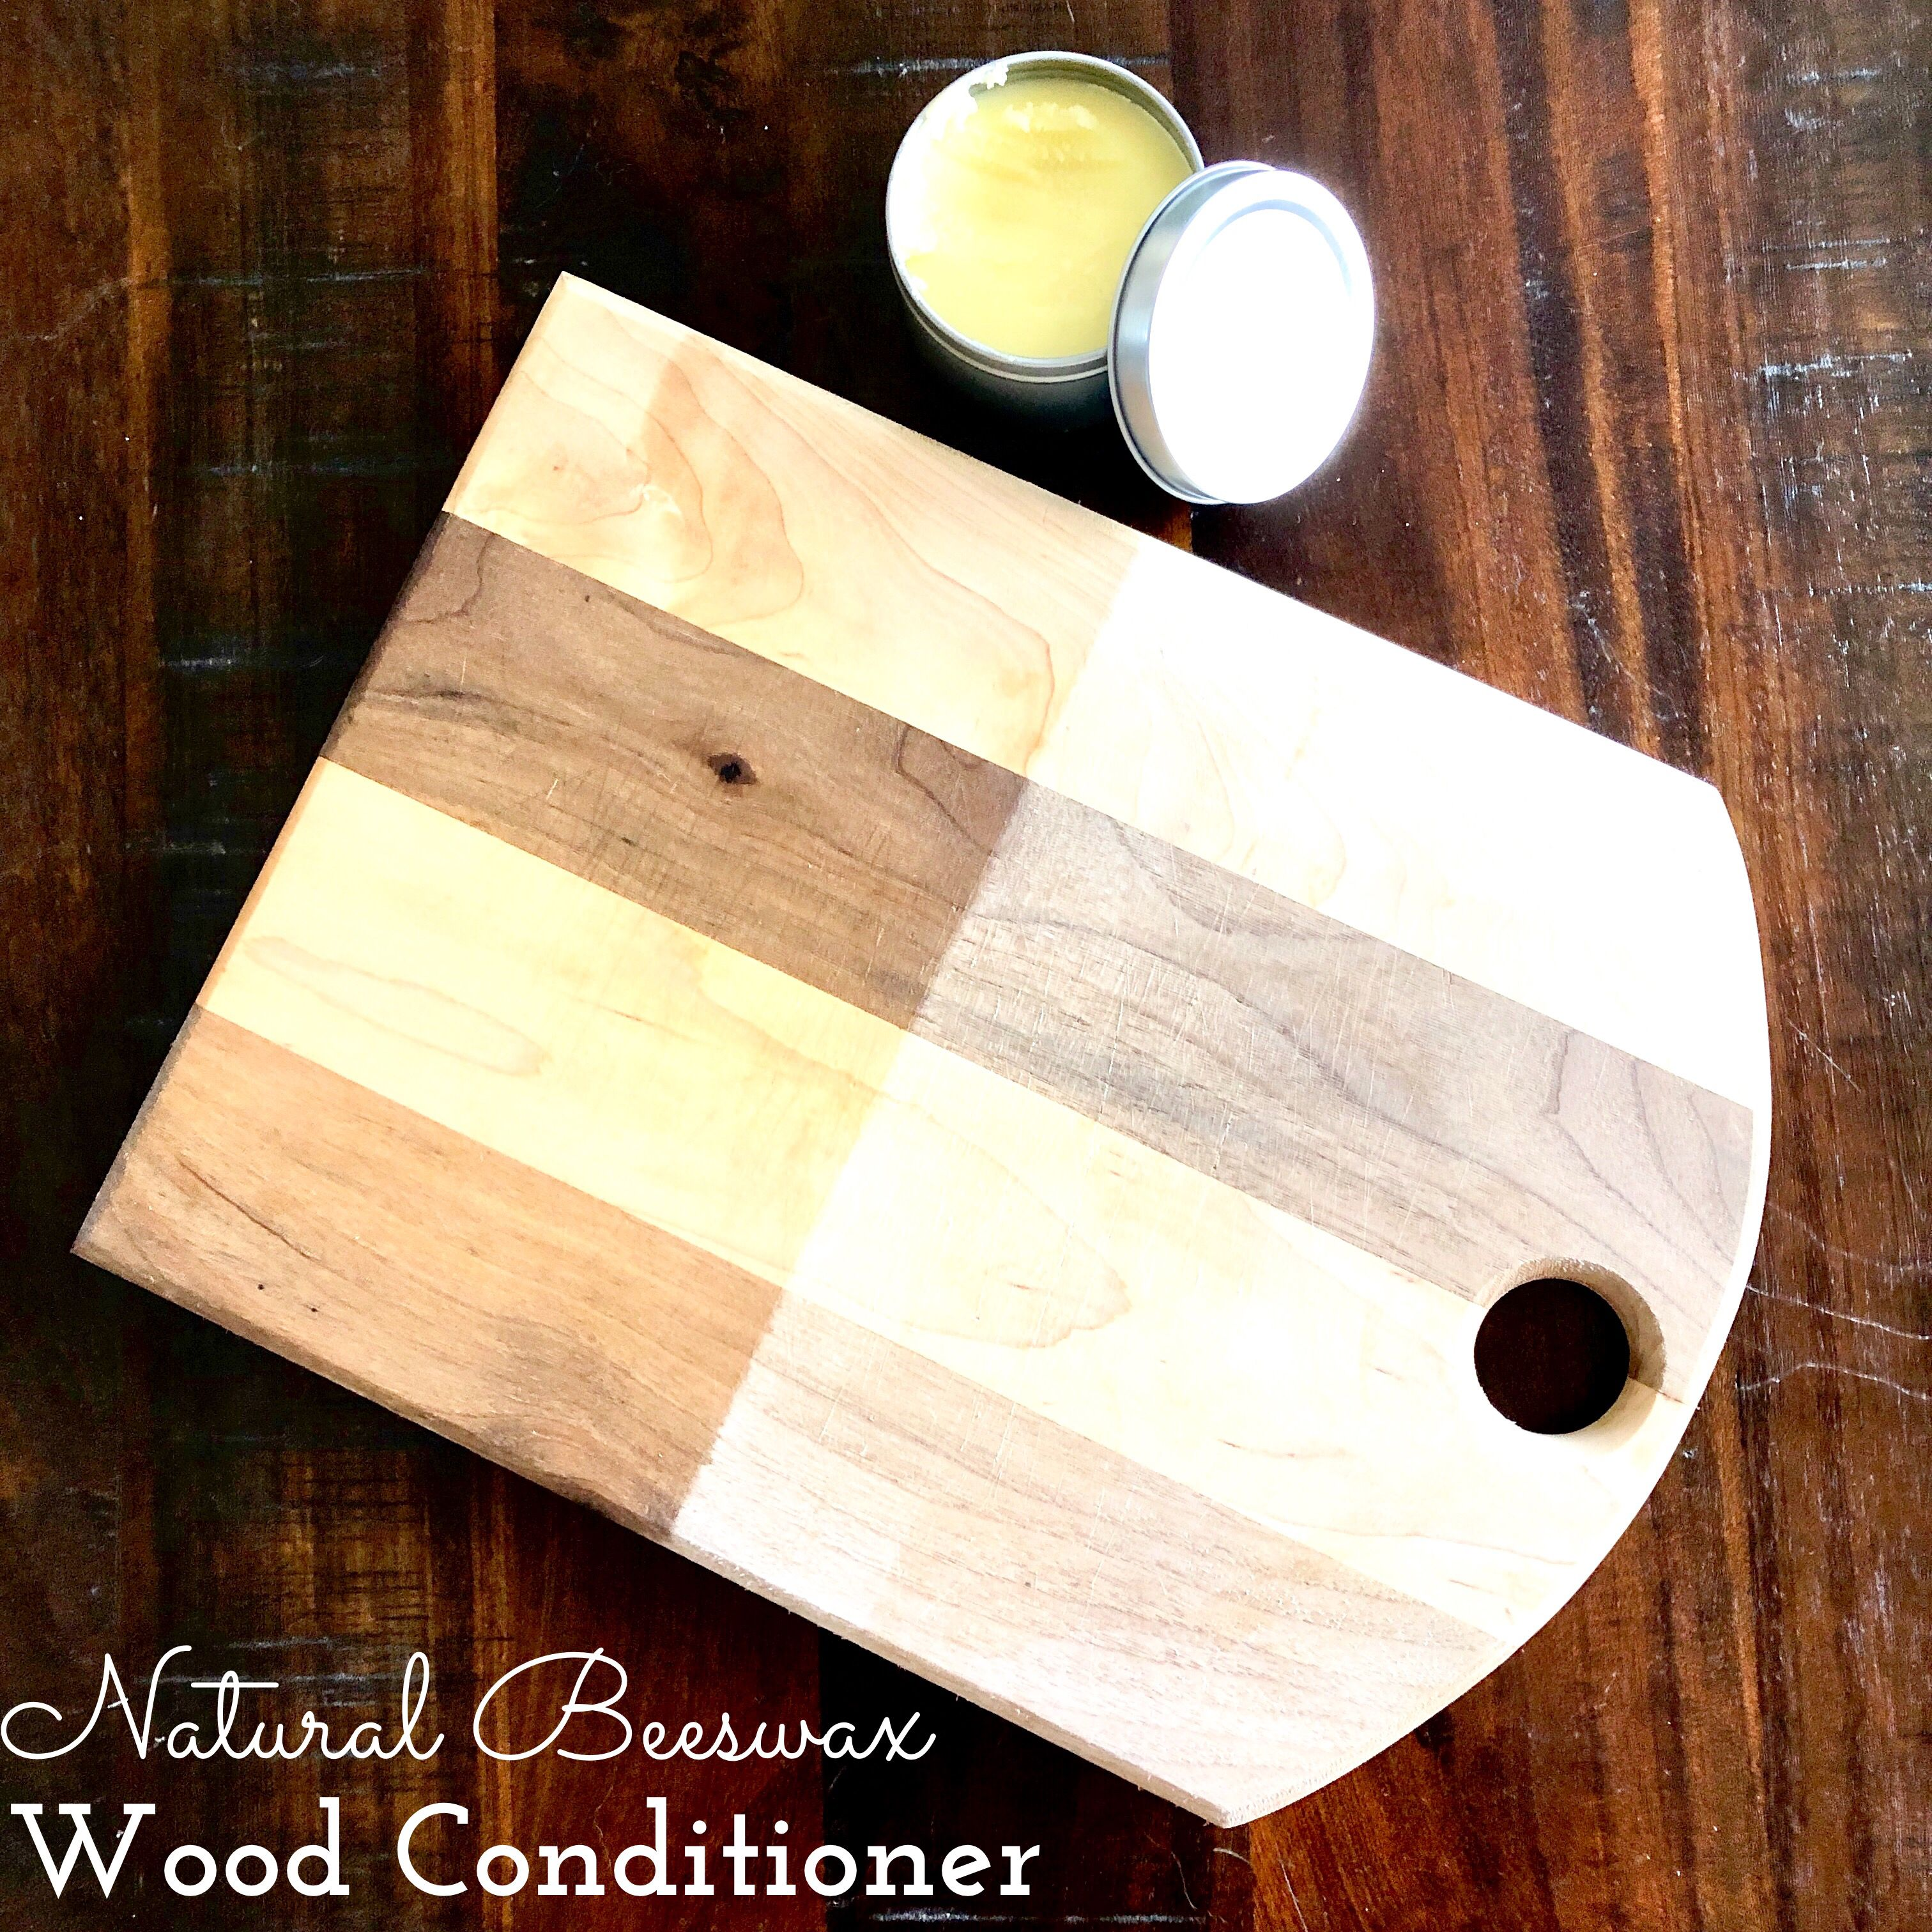 All Natural Beeswax Wood Conditioner Beeswax Wood Conditioners Natural Beeswax